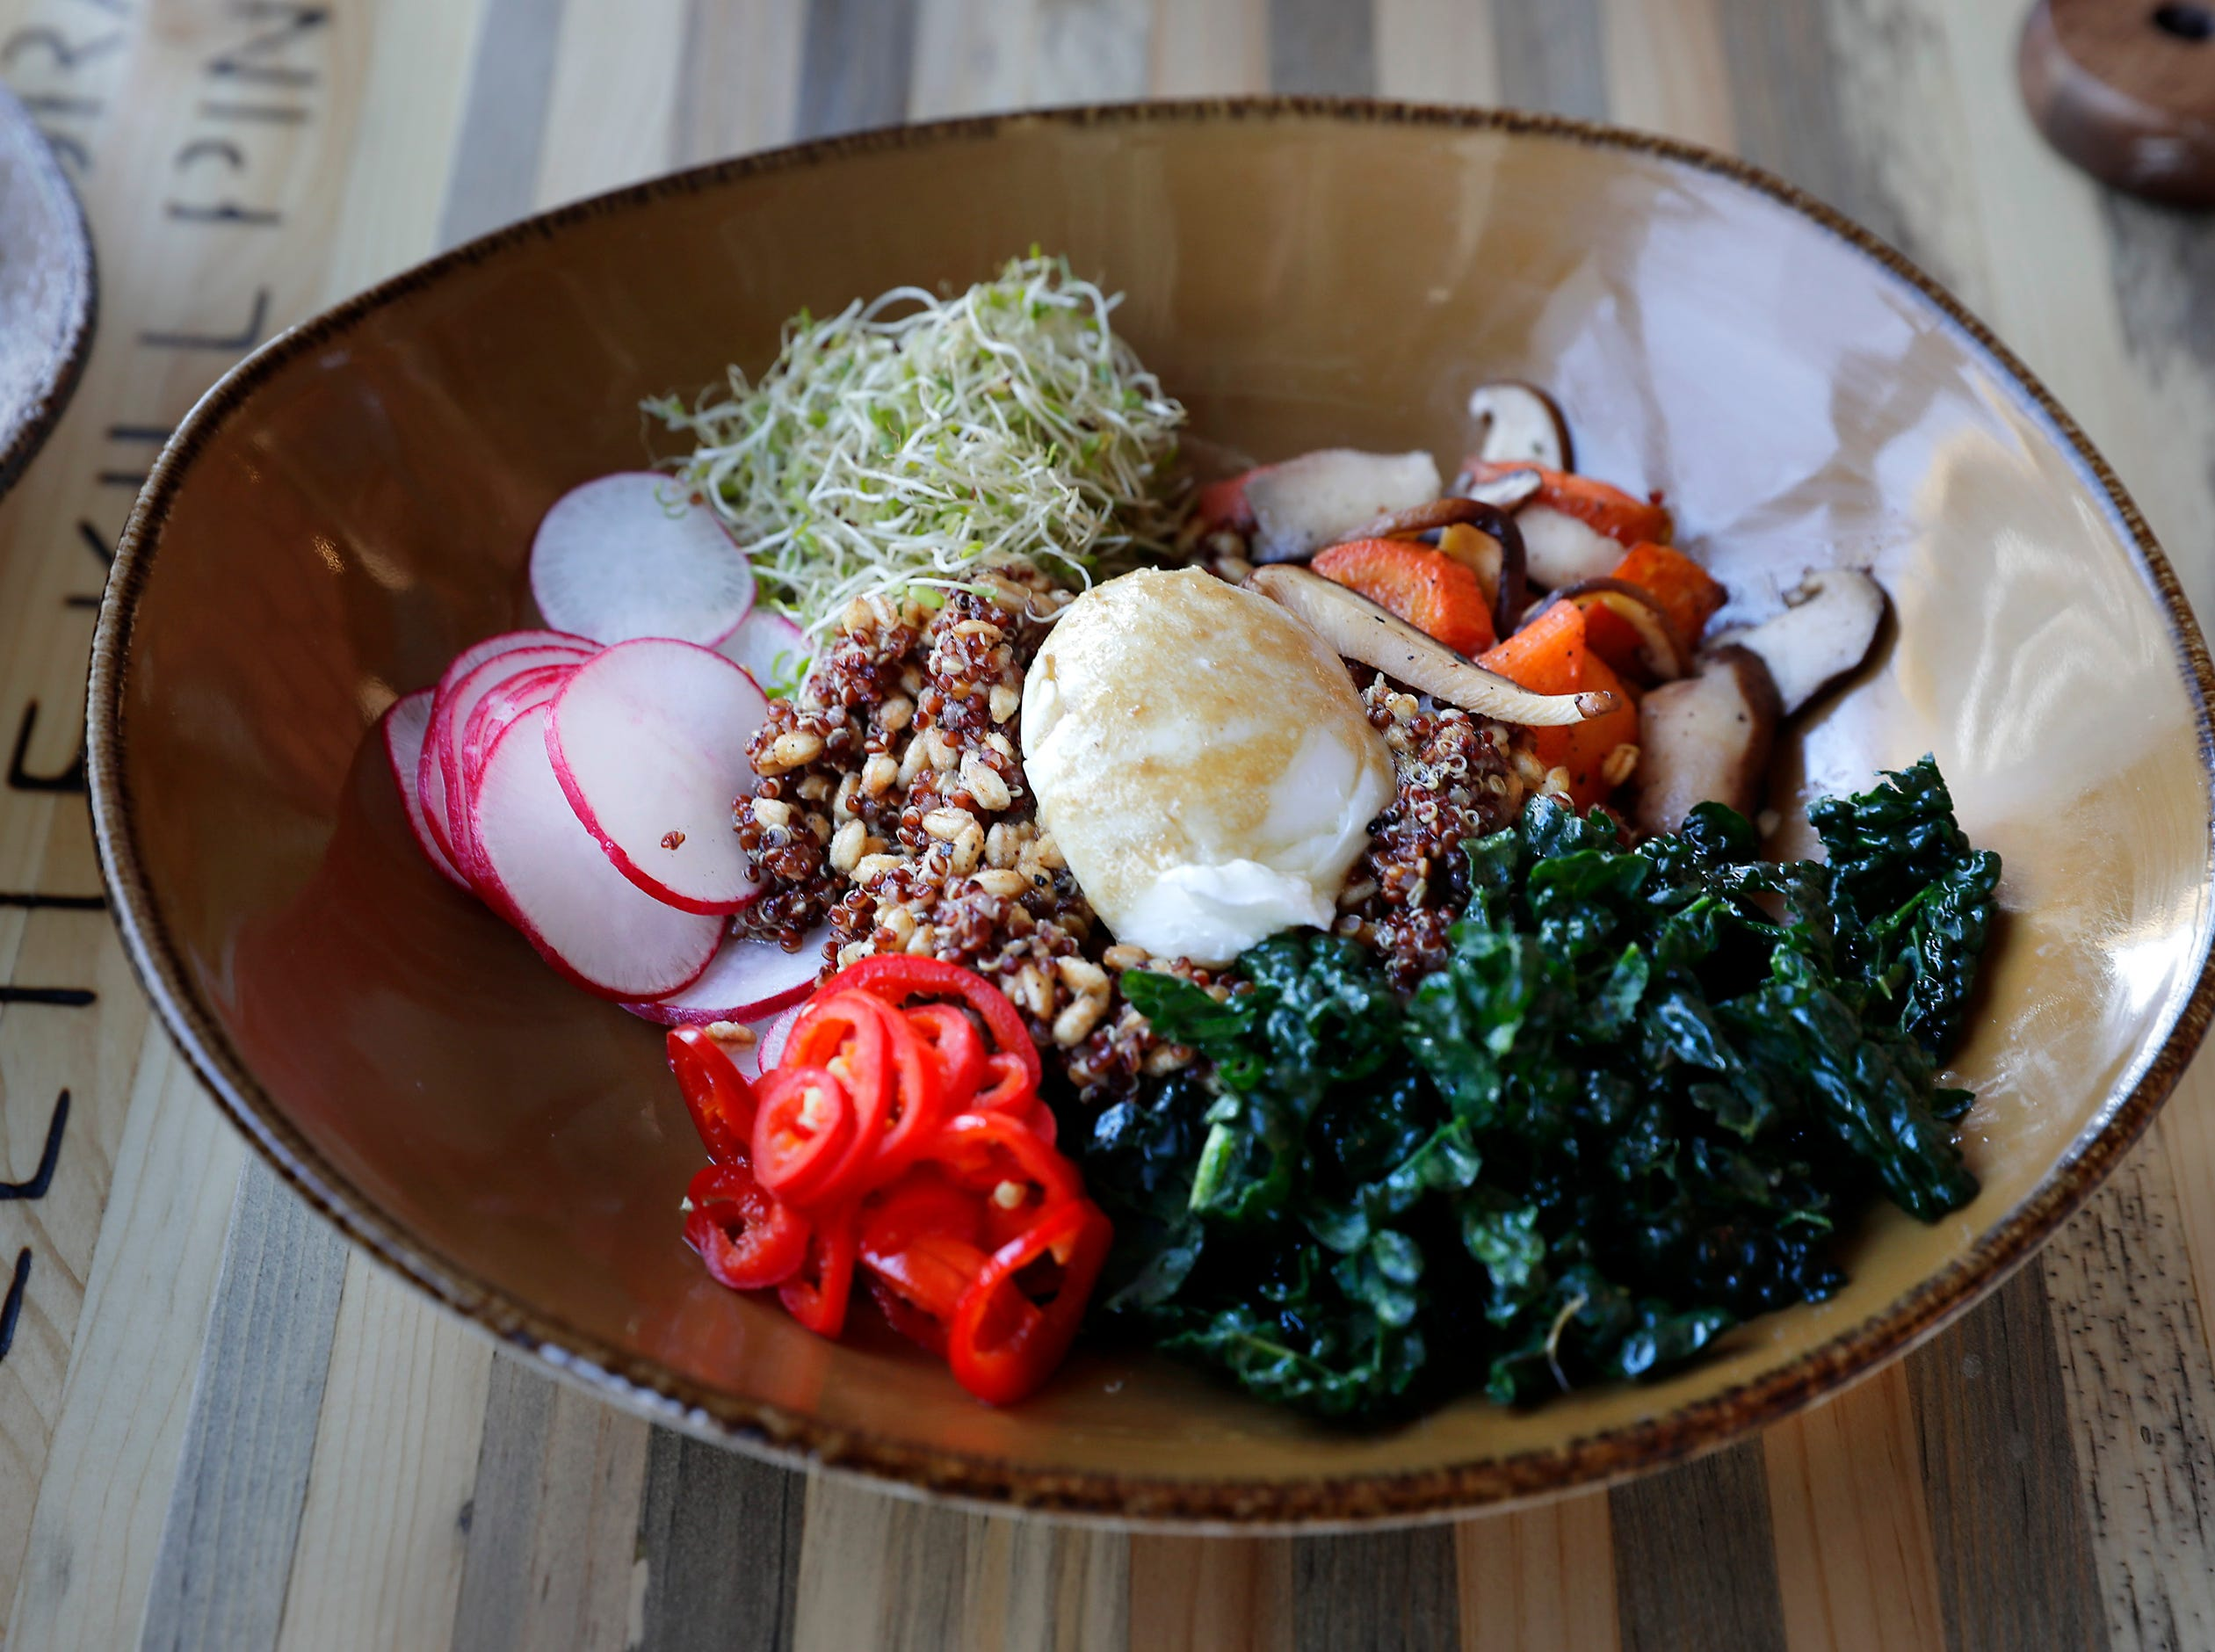 A Superfood grain bowl is on the menu at during Punch Bowl Social.